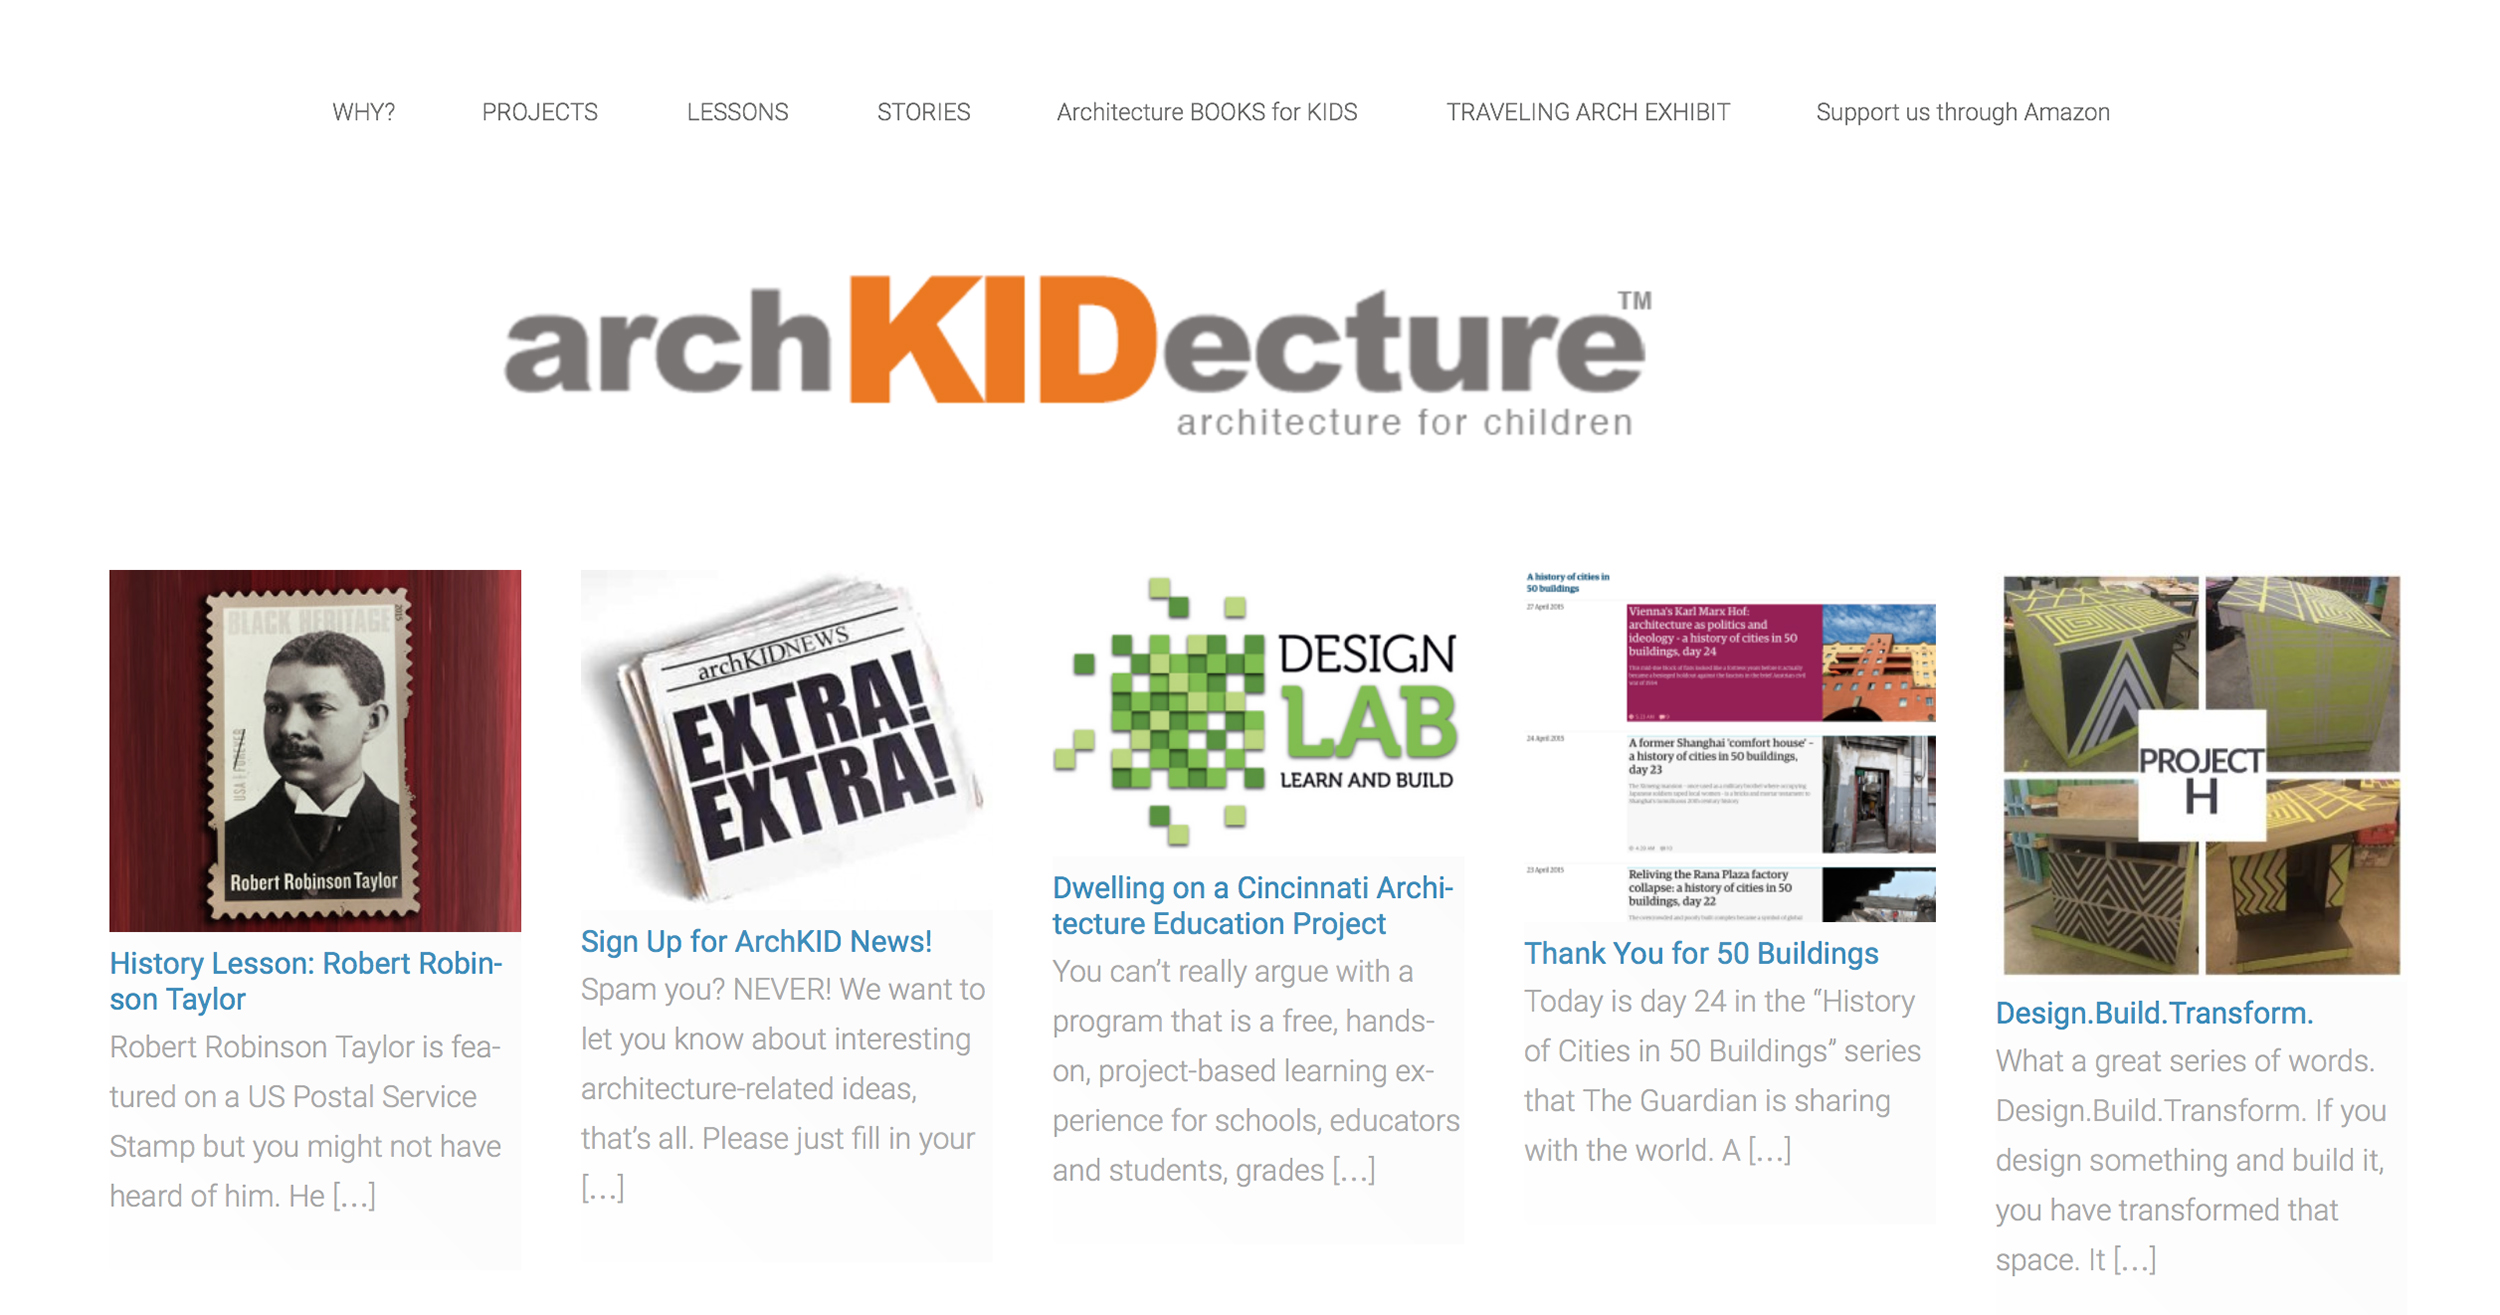 ArchKIDecture